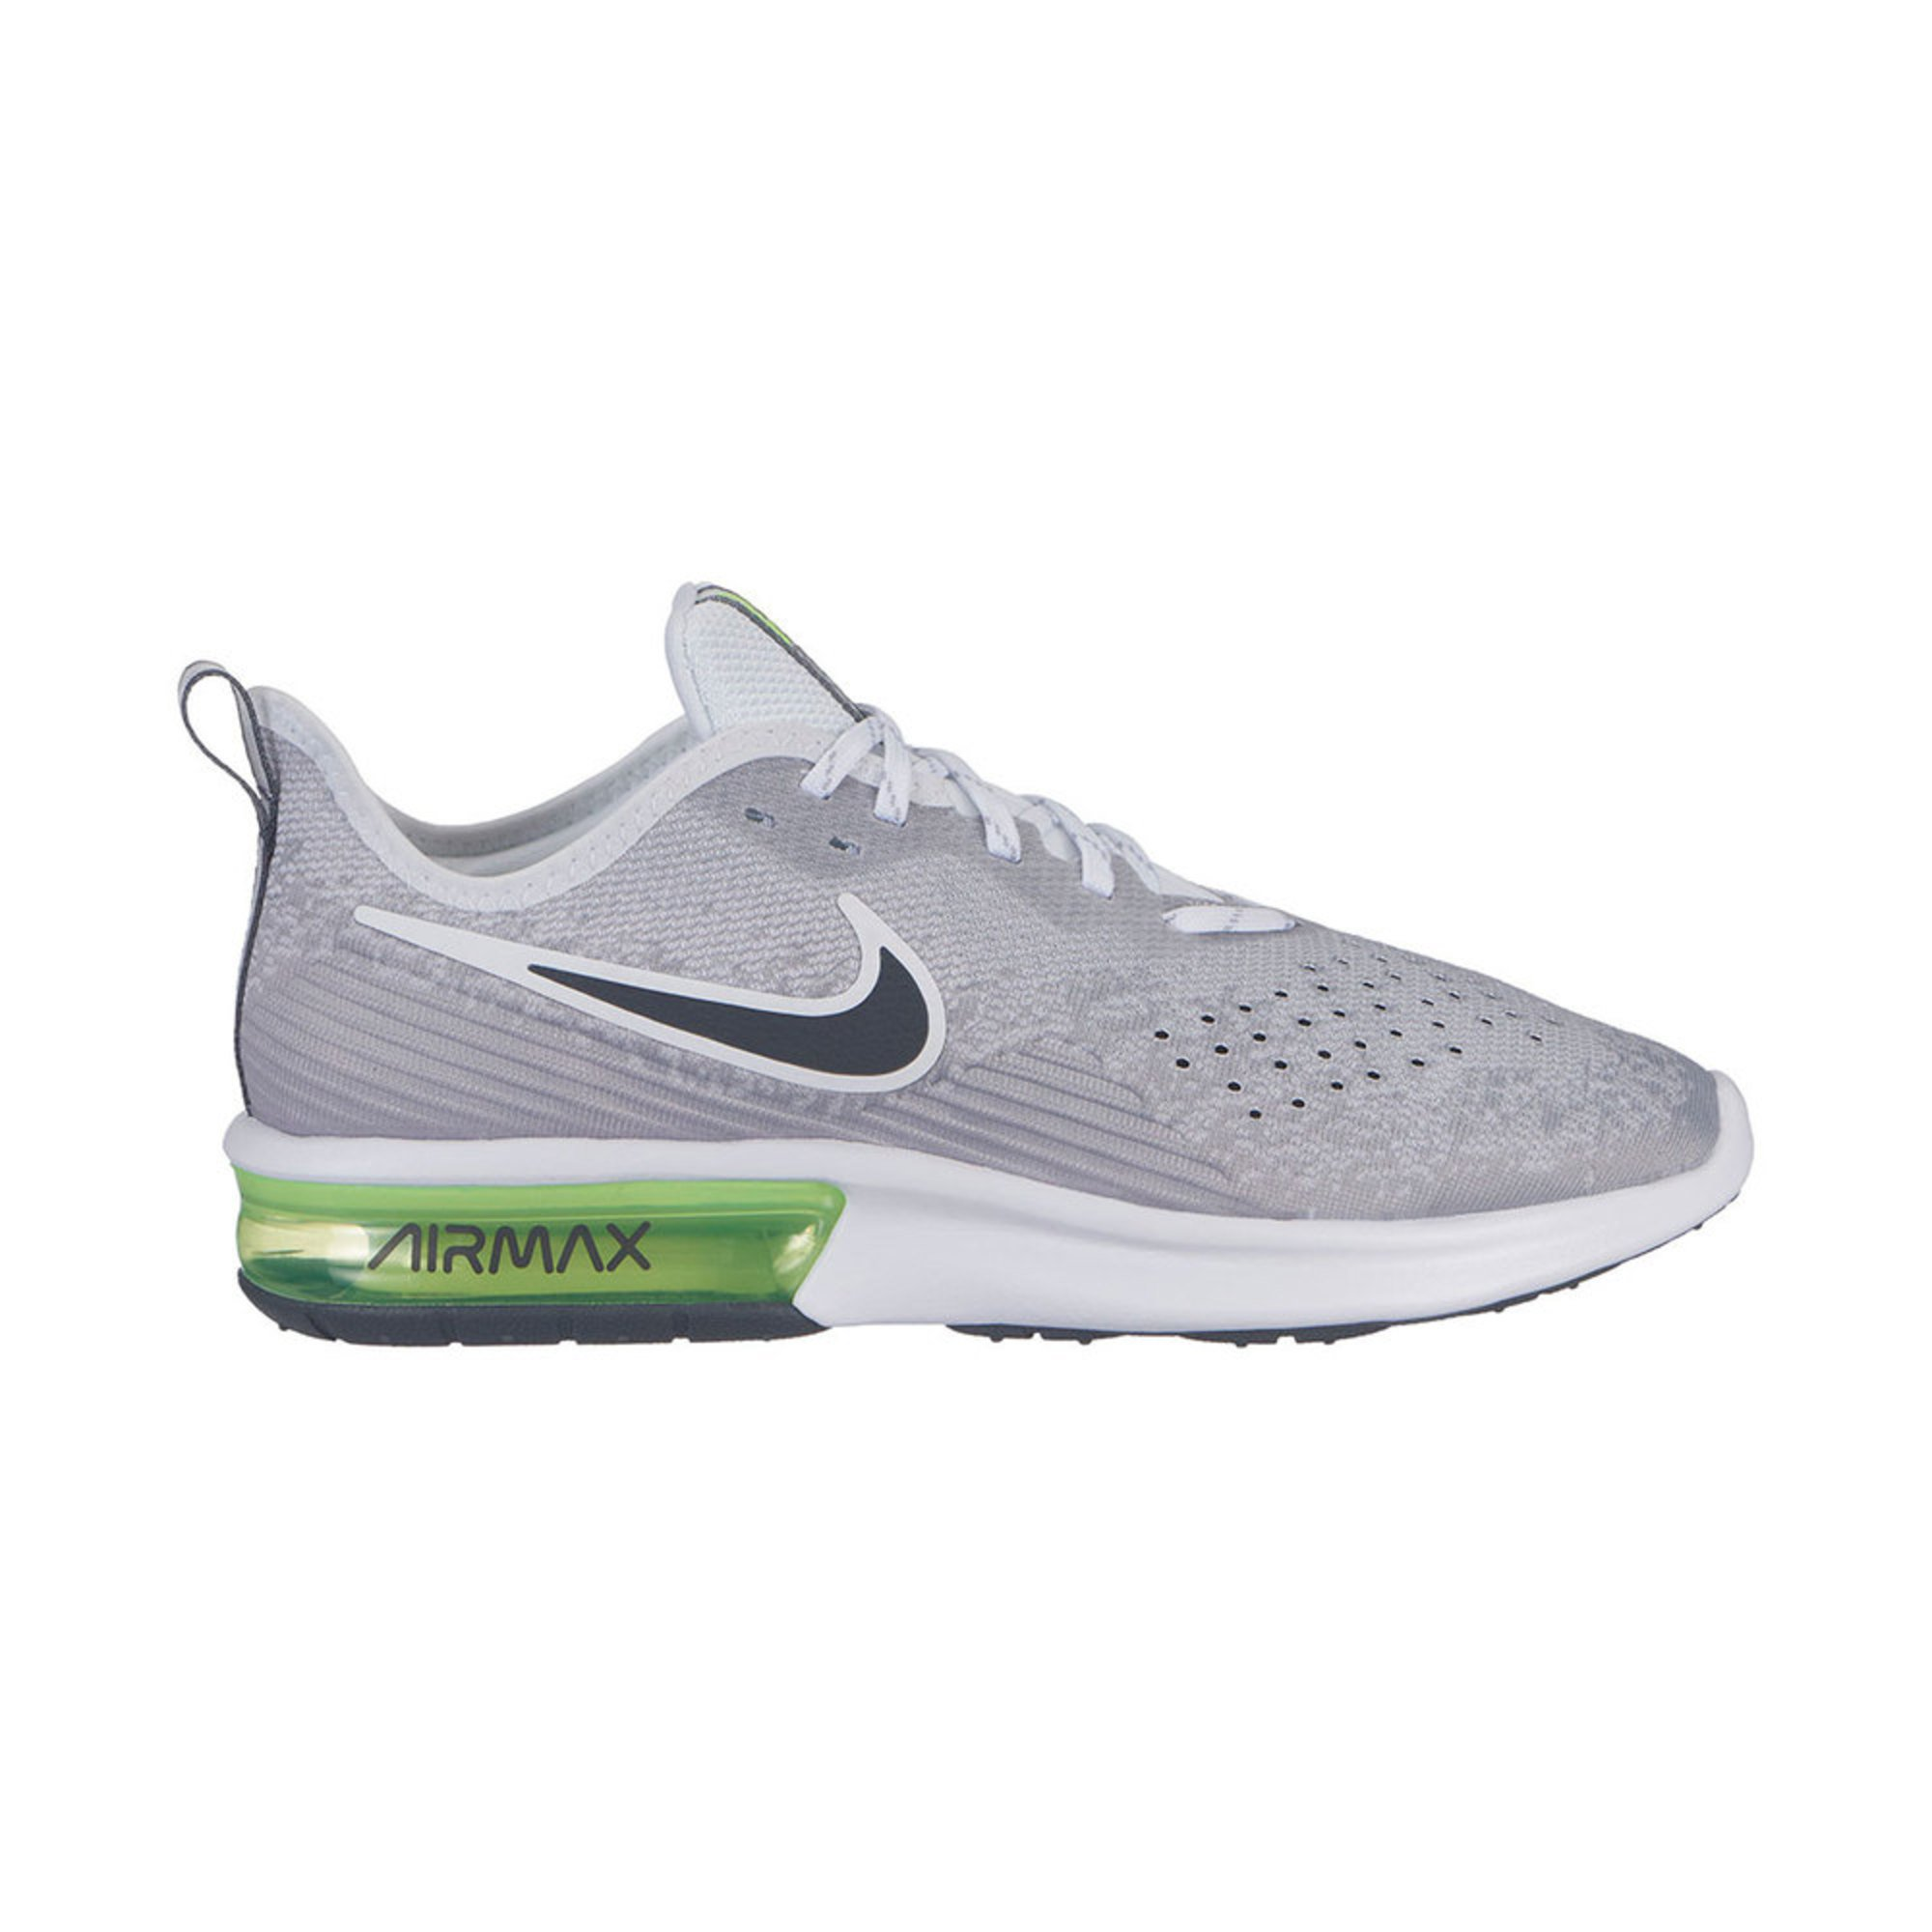 213f339a16 Nike Men's Air Max Sequent 4 Running Shoe | Men's Running Shoes ...